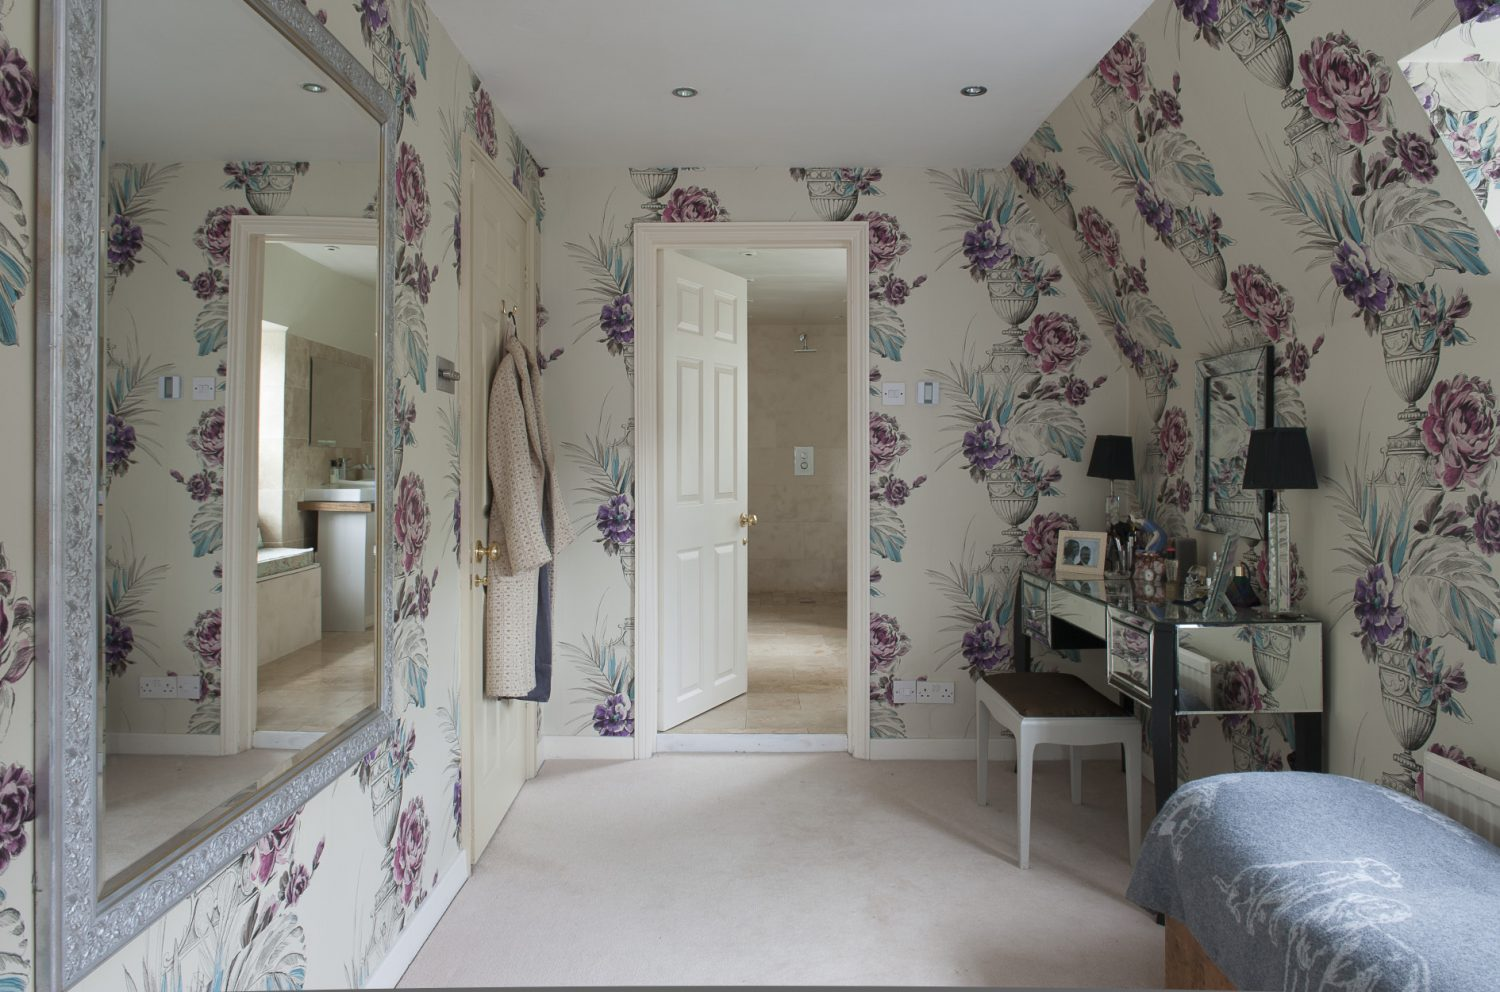 The master bedroom dressing area has been decorated in a gloriously exuberant Designer's Guild floral paper. A door to one side leads into a wet room, where a window seat is upholstered in a duck egg blue GP & J Baker print, above which sit Chinese vases